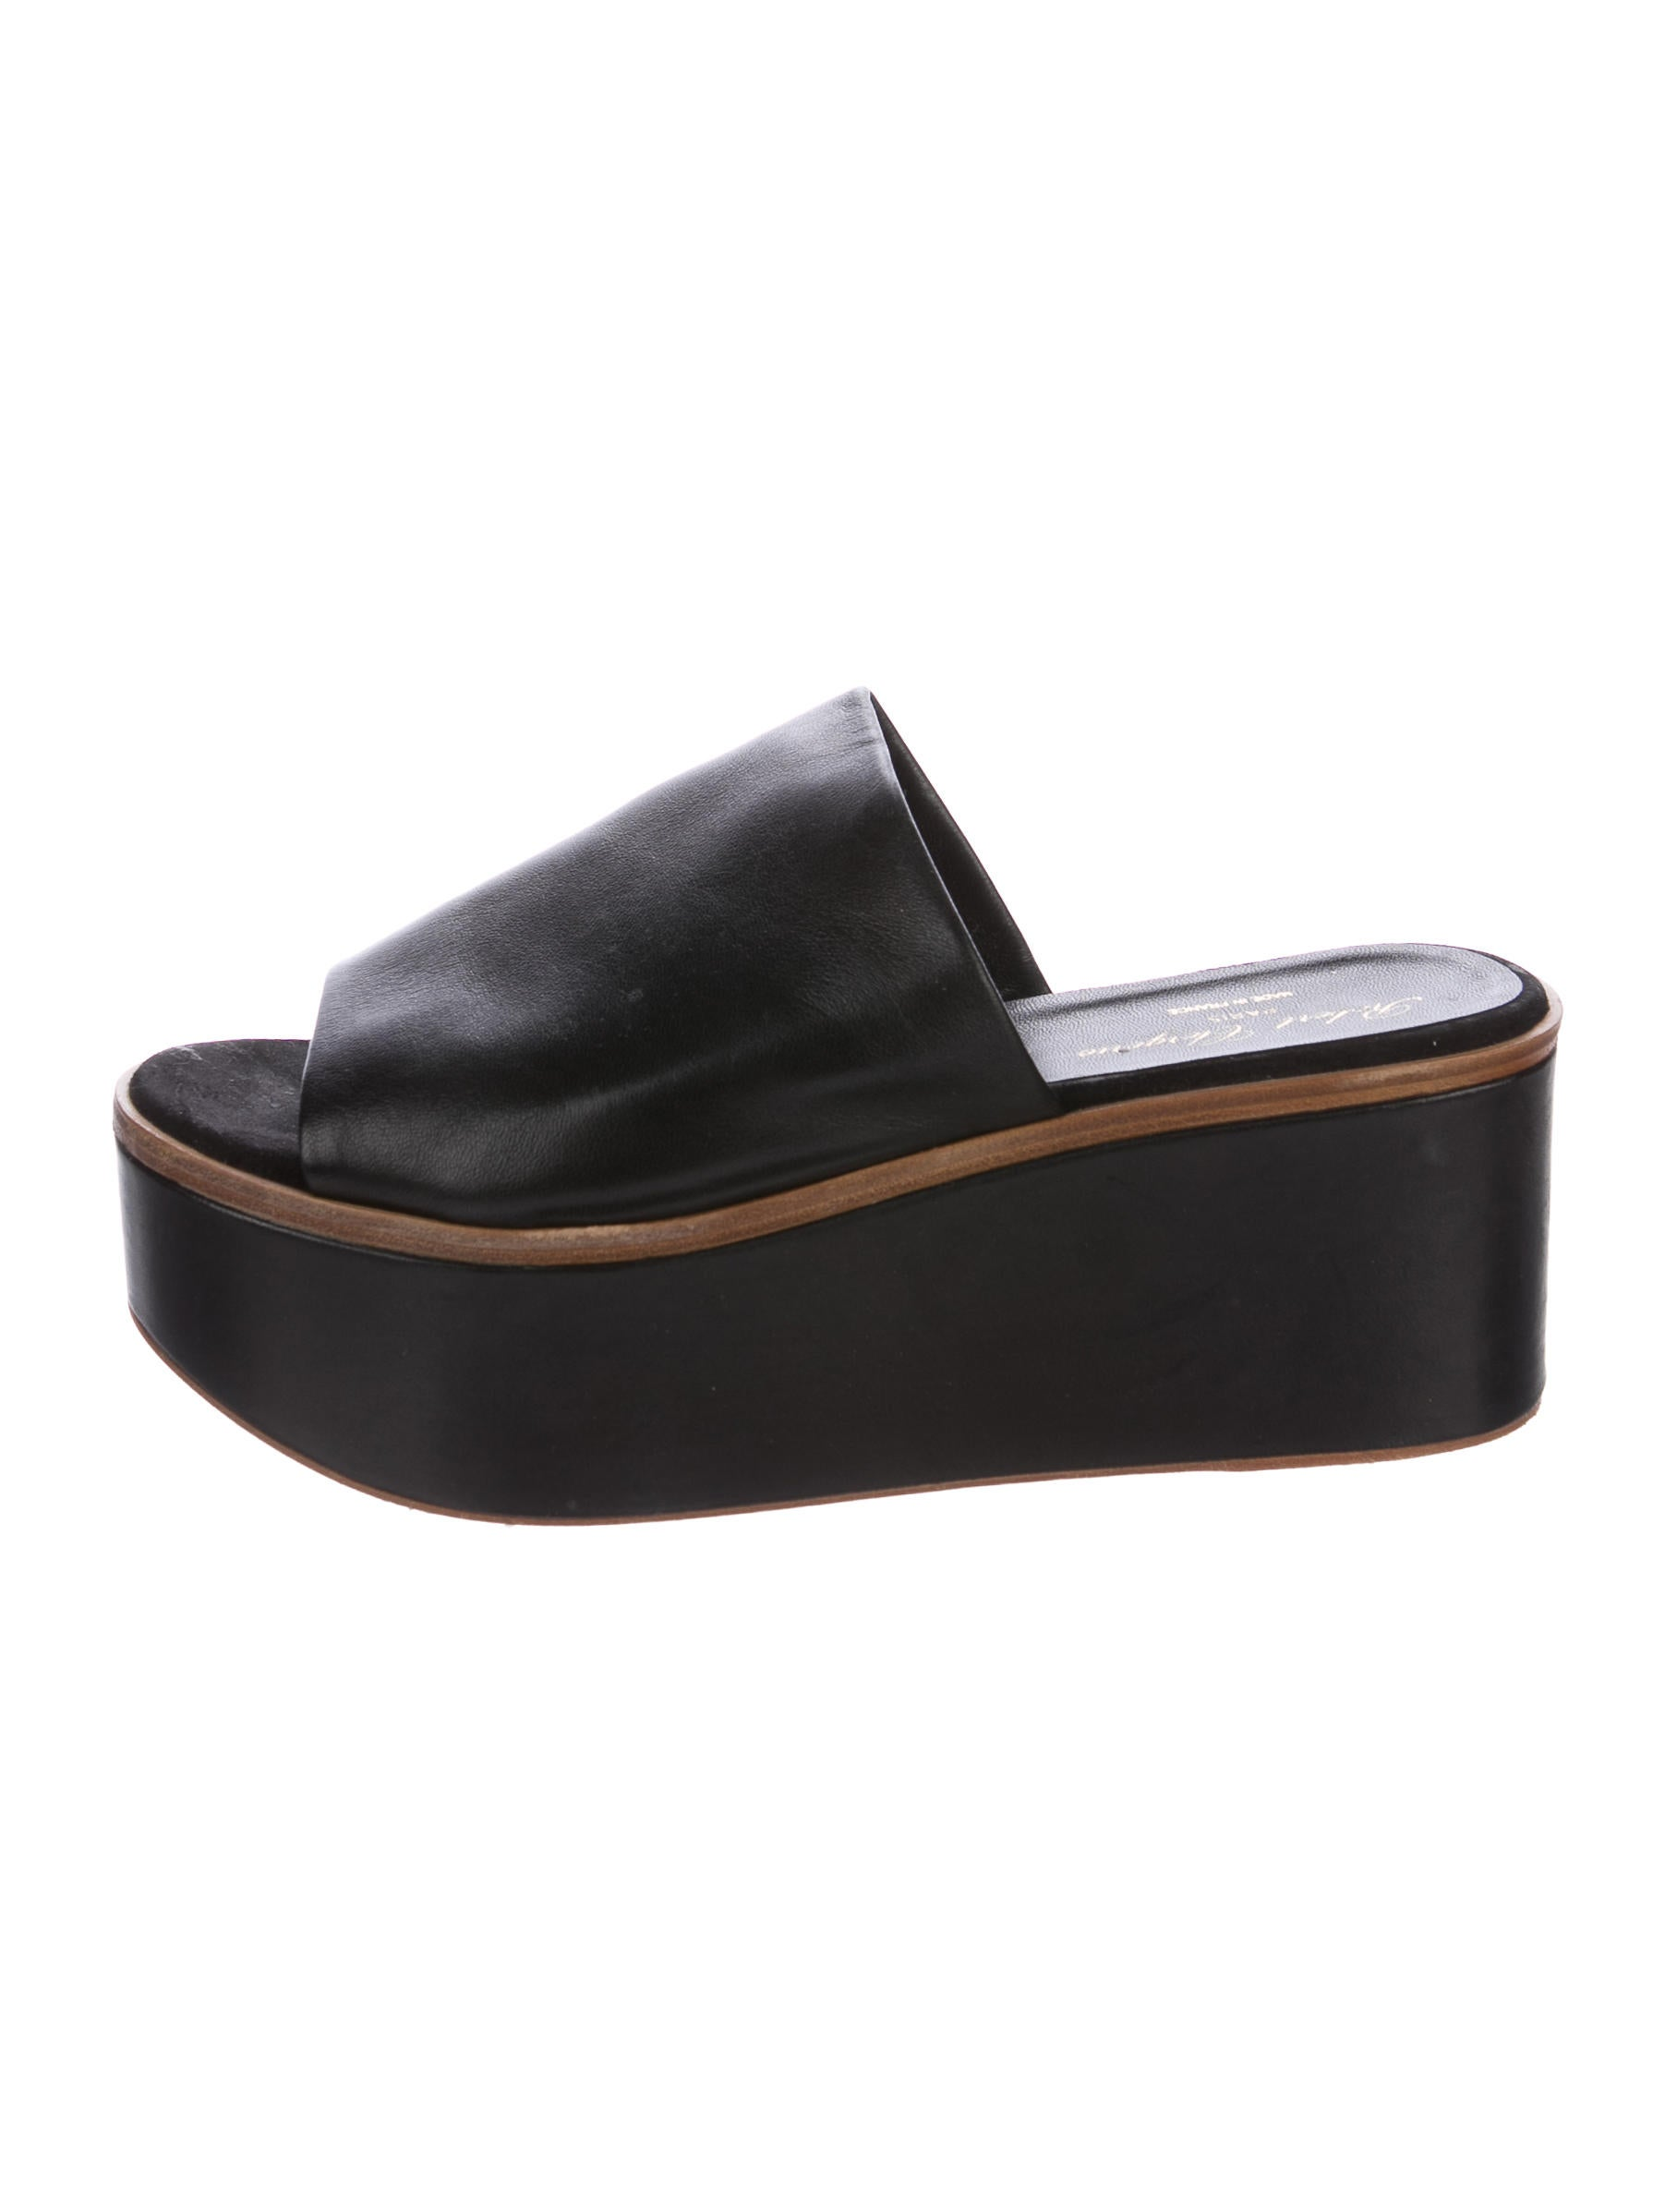 latest collections cheap online Robert Clergerie x Opening Ceremony Platform Slide Sandals quality free shipping low price sale recommend 0FrEoD